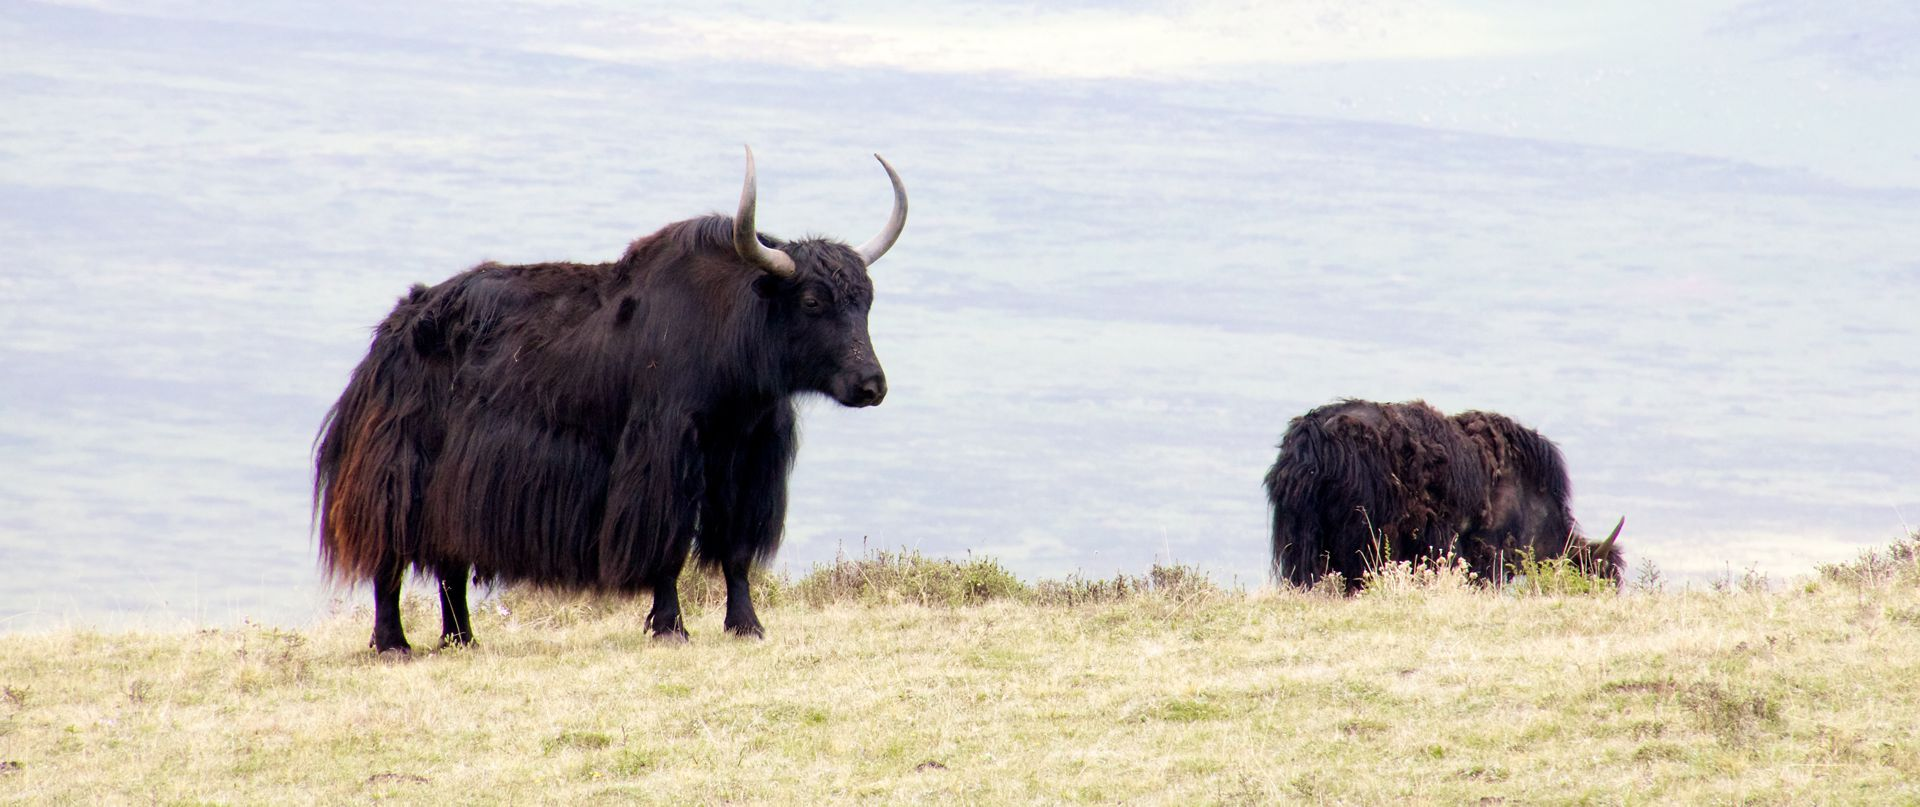 Yaks on the Tibetan plain